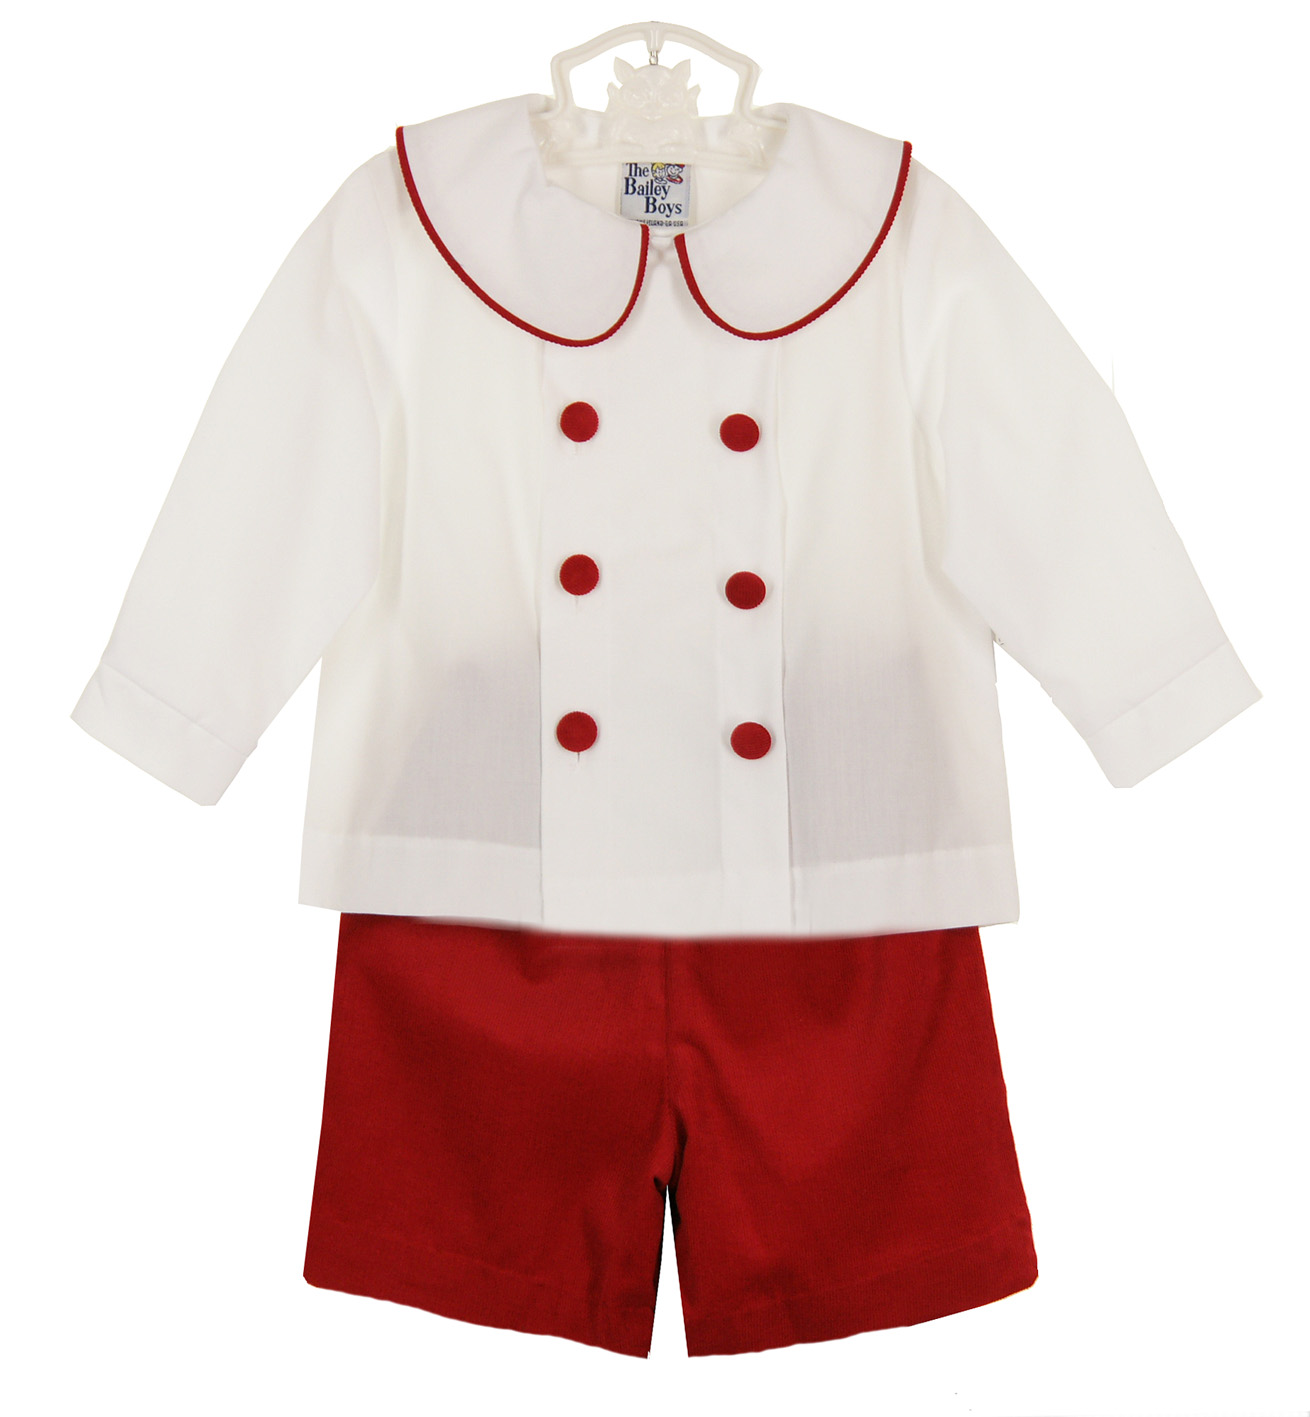 Bailey Boys red shorts set,brother sister matching Christmas ...